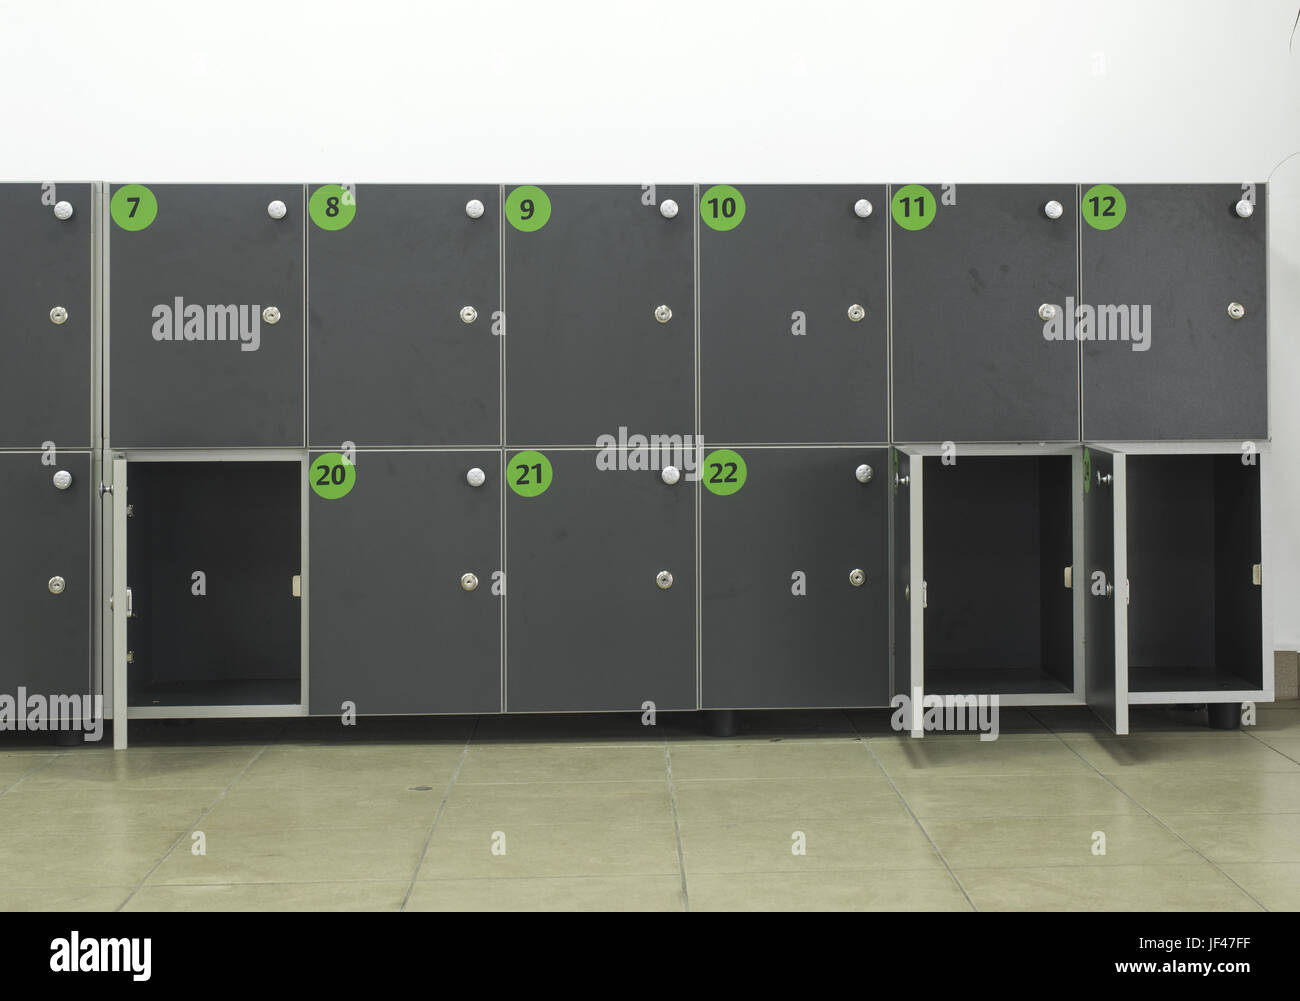 luggage lockers stockfotos luggage lockers bilder alamy. Black Bedroom Furniture Sets. Home Design Ideas